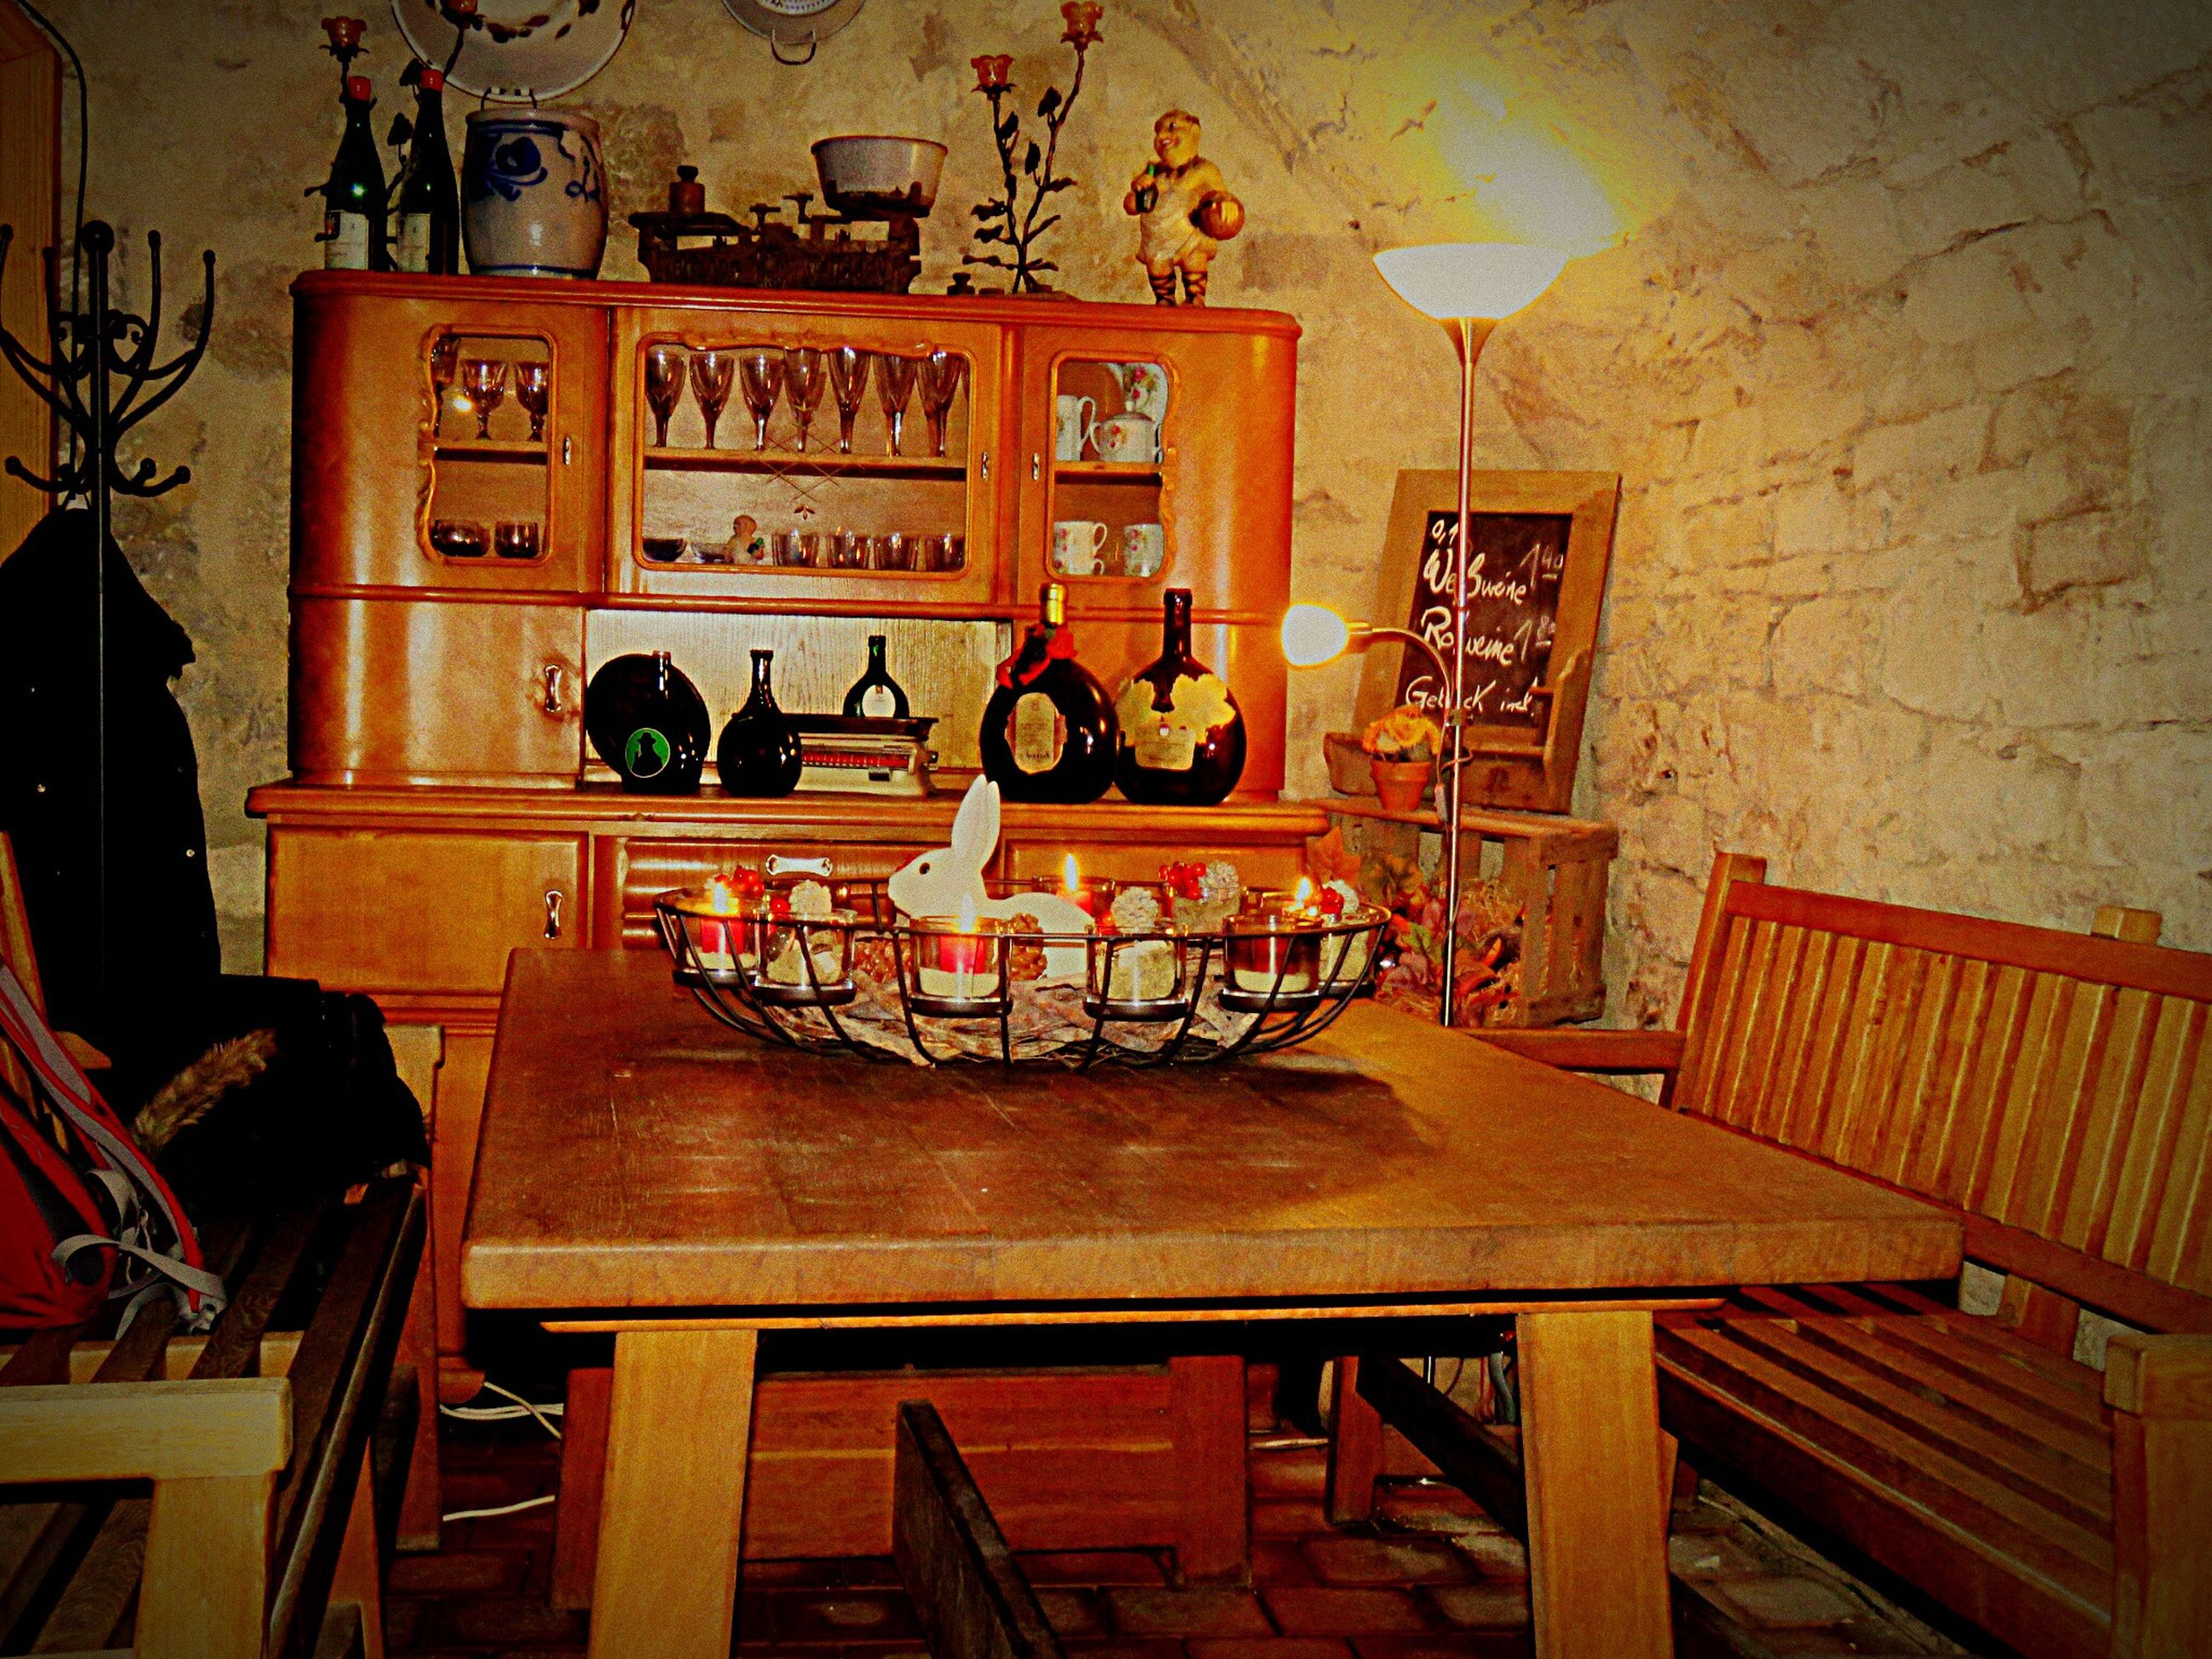 indoors, table, text, chair, wood - material, communication, illuminated, home interior, absence, wall - building feature, built structure, furniture, hanging, architecture, no people, western script, lighting equipment, house, non-western script, restaurant